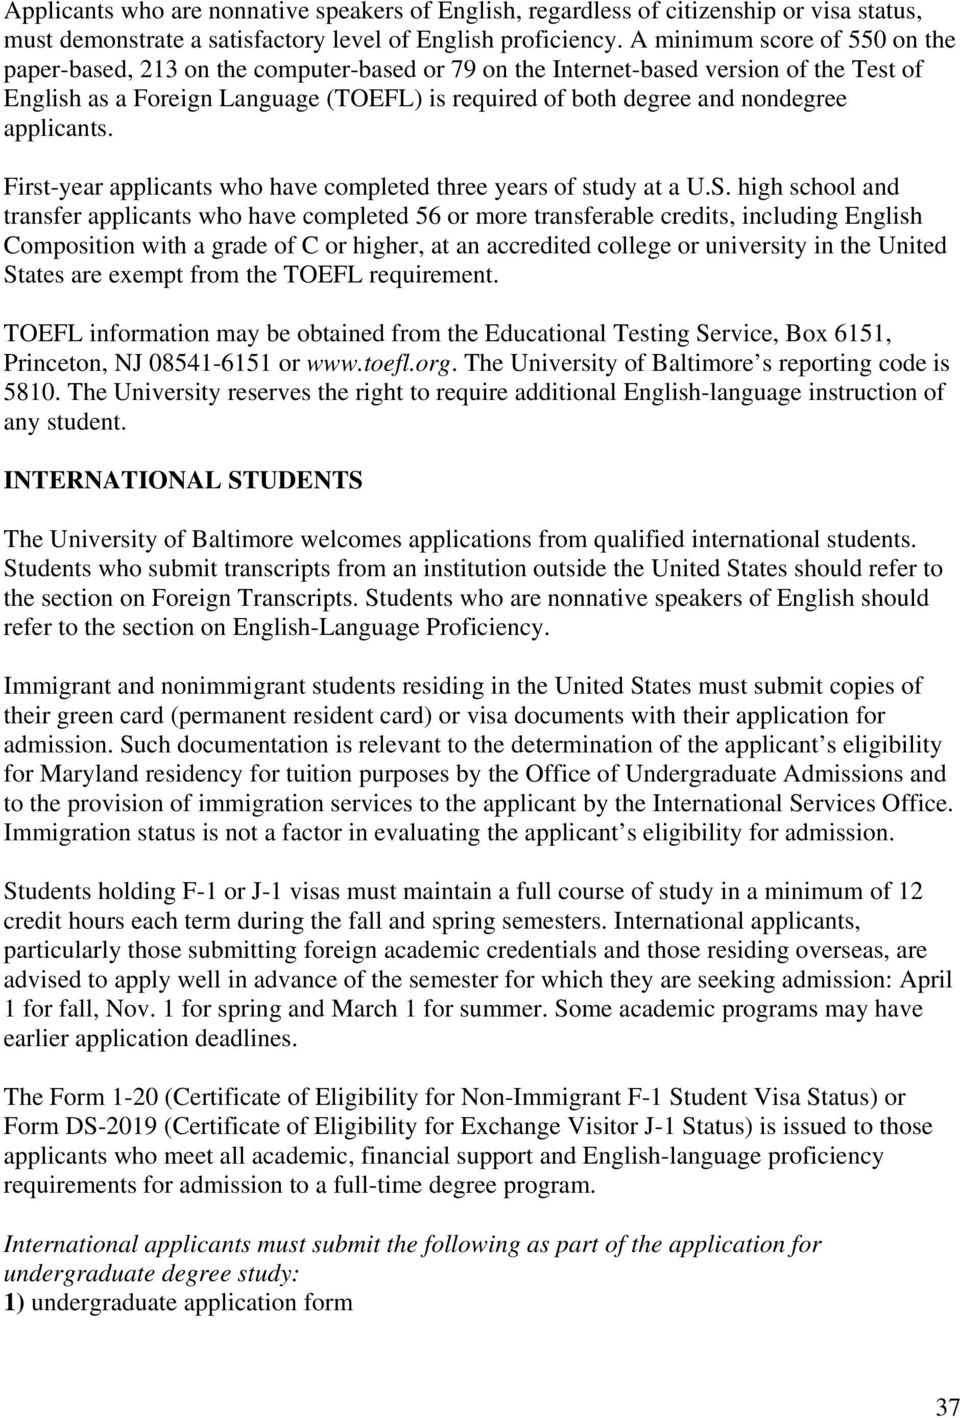 applicants. First-year applicants who have completed three years of study at a U.S.